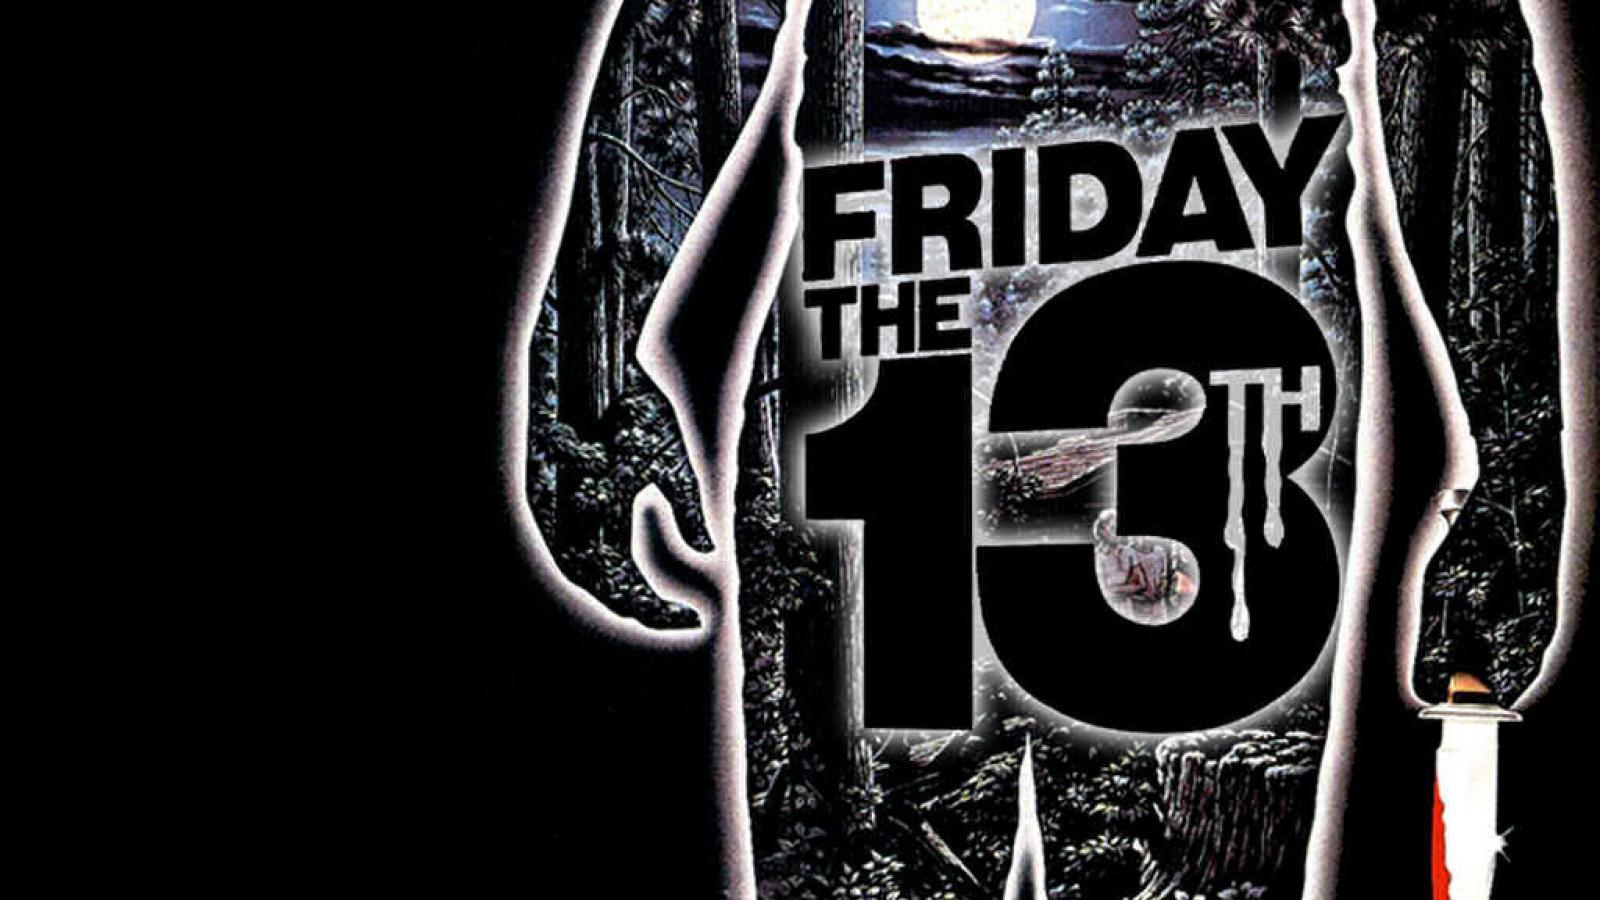 friday the 13th horror movies #rSH